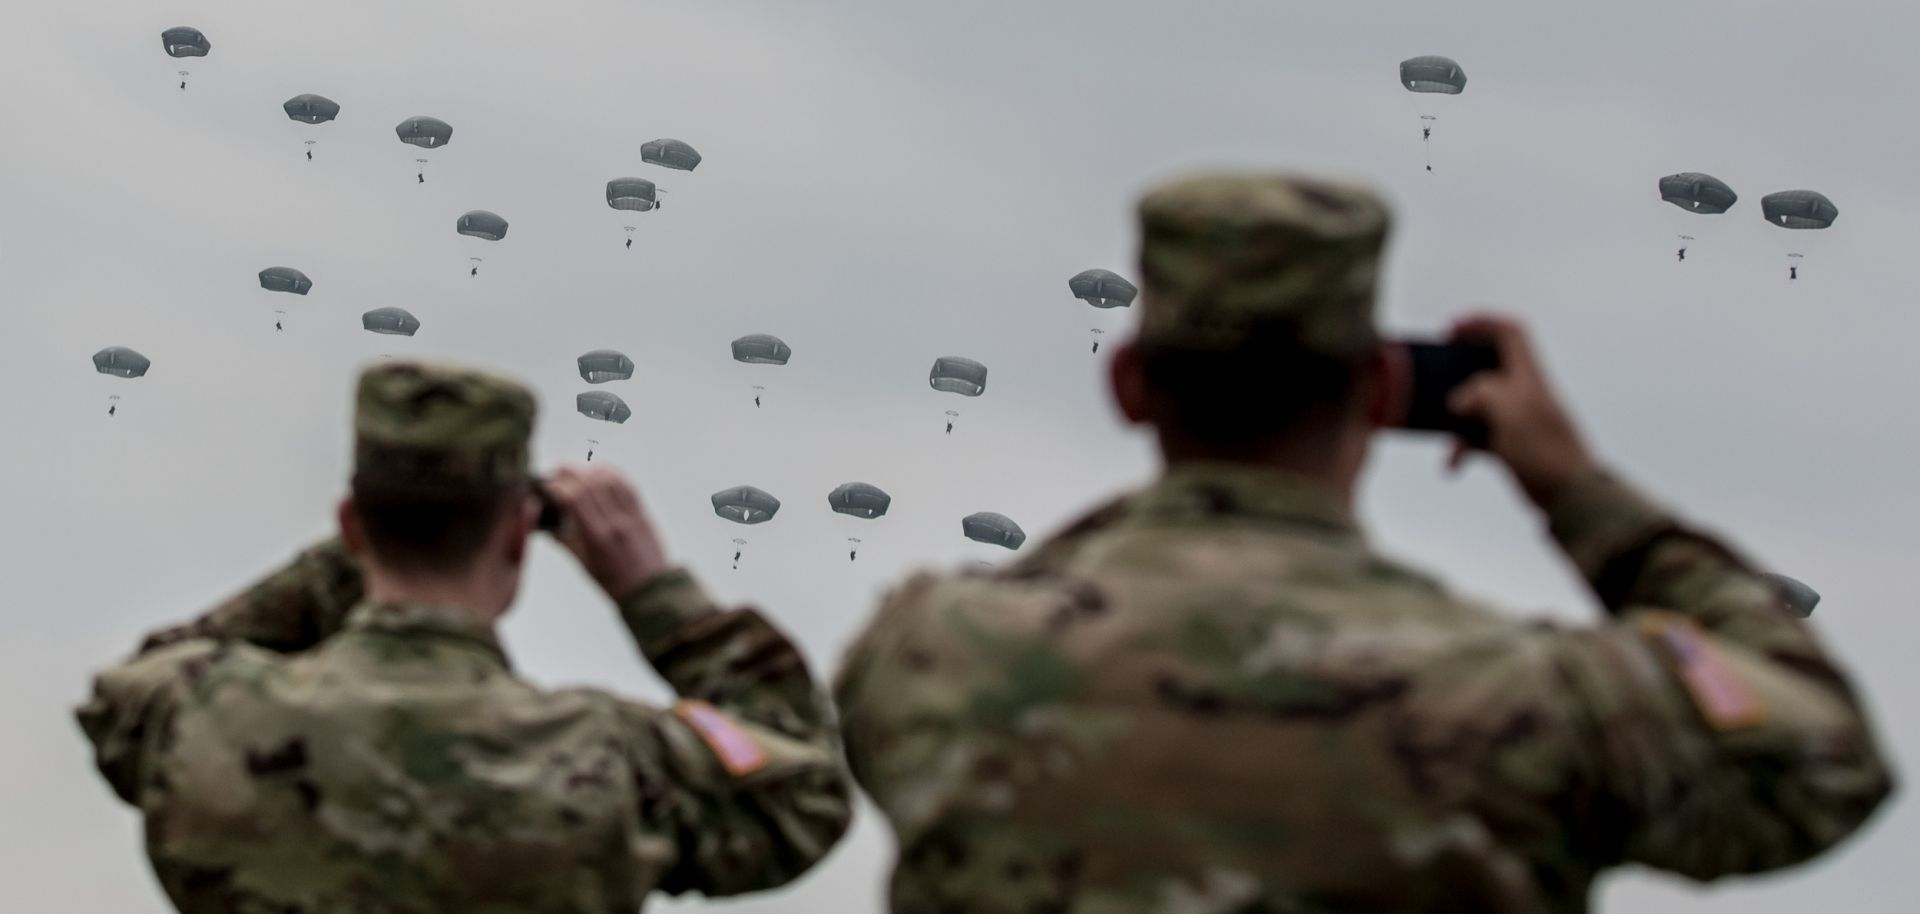 U.S. soldiers watch paratroopers from the U.S. Army 173rd Airborne Brigade, the UK's 16 Air Assault Brigade and Italian Folgore Airborne Brigade as they parachute to the ground during a training jump as part of the Saber Junction 16 military exercises near the Hohenfels Training Area. April 2016, near Grafenwoehr, Germany.